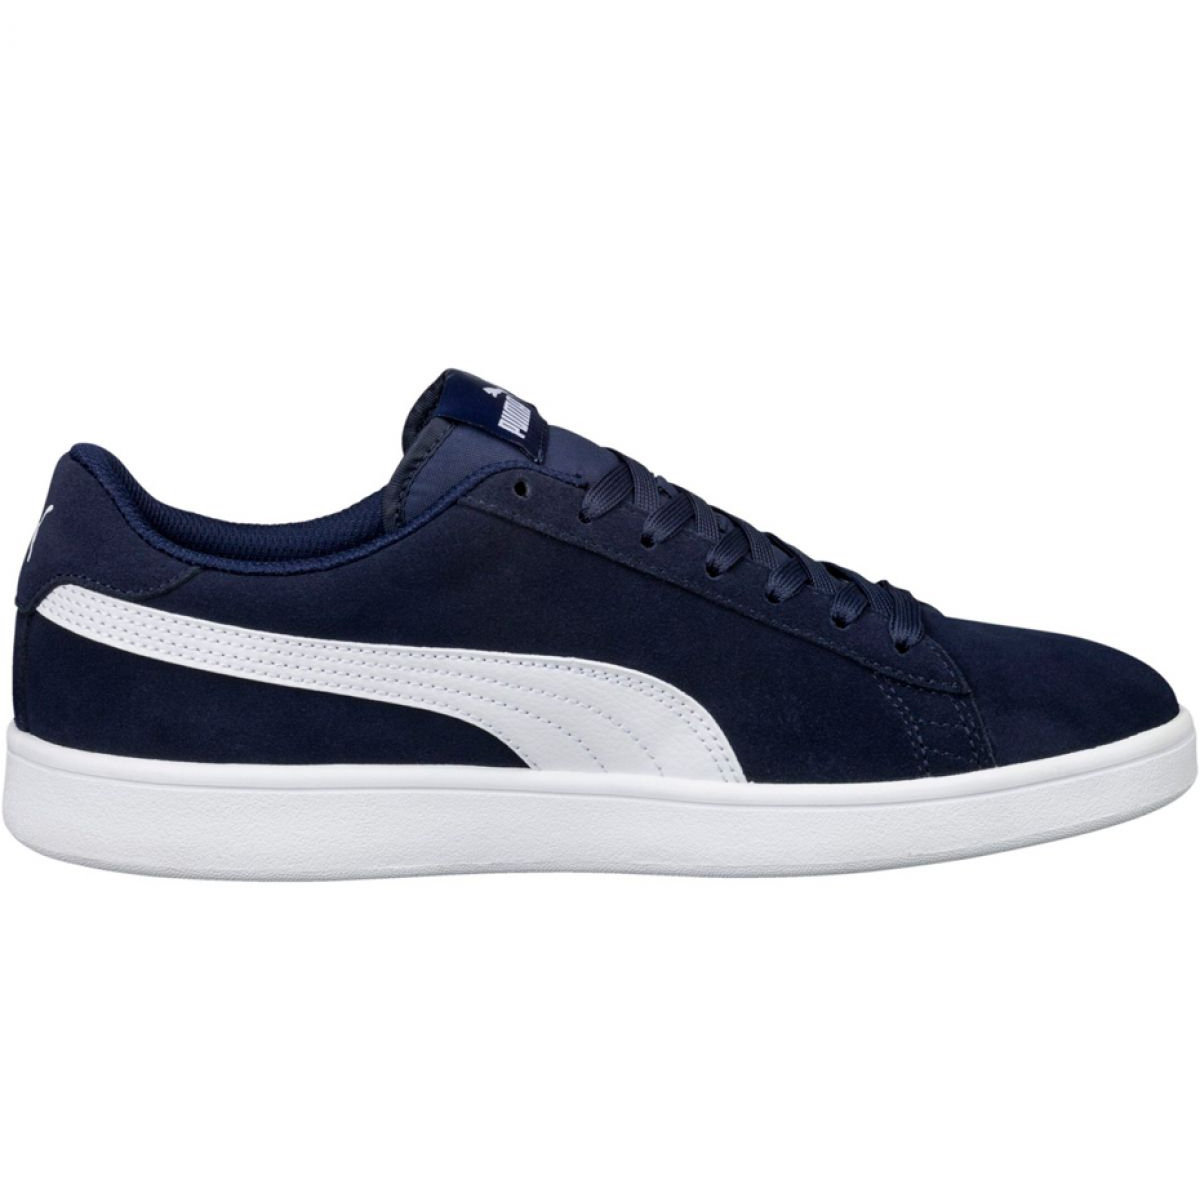 Details about Shoes Puma Smash V2 M 364989 04